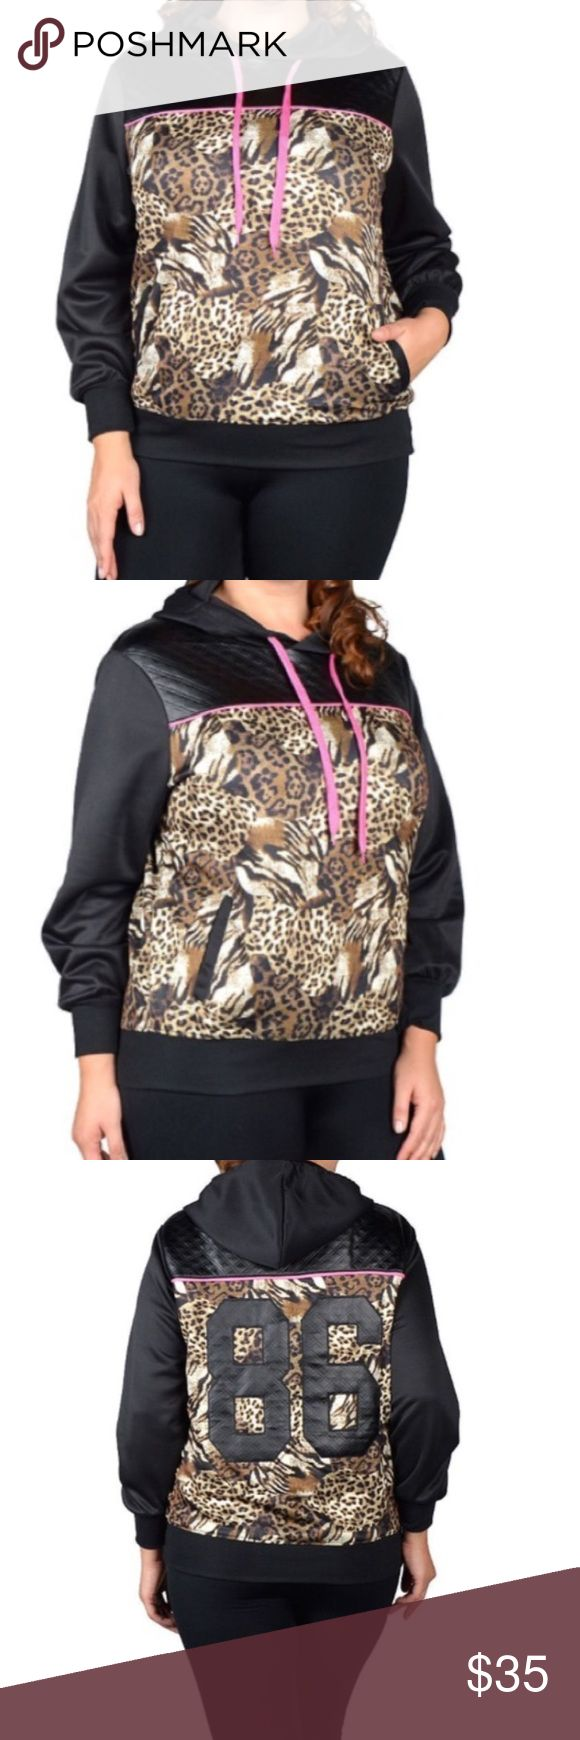 Plus size Animal print Hoodie jacket Very beautiful and cozy jacket with side pockets . Material is 95% polyester 5% spandex . Jackets & Coats